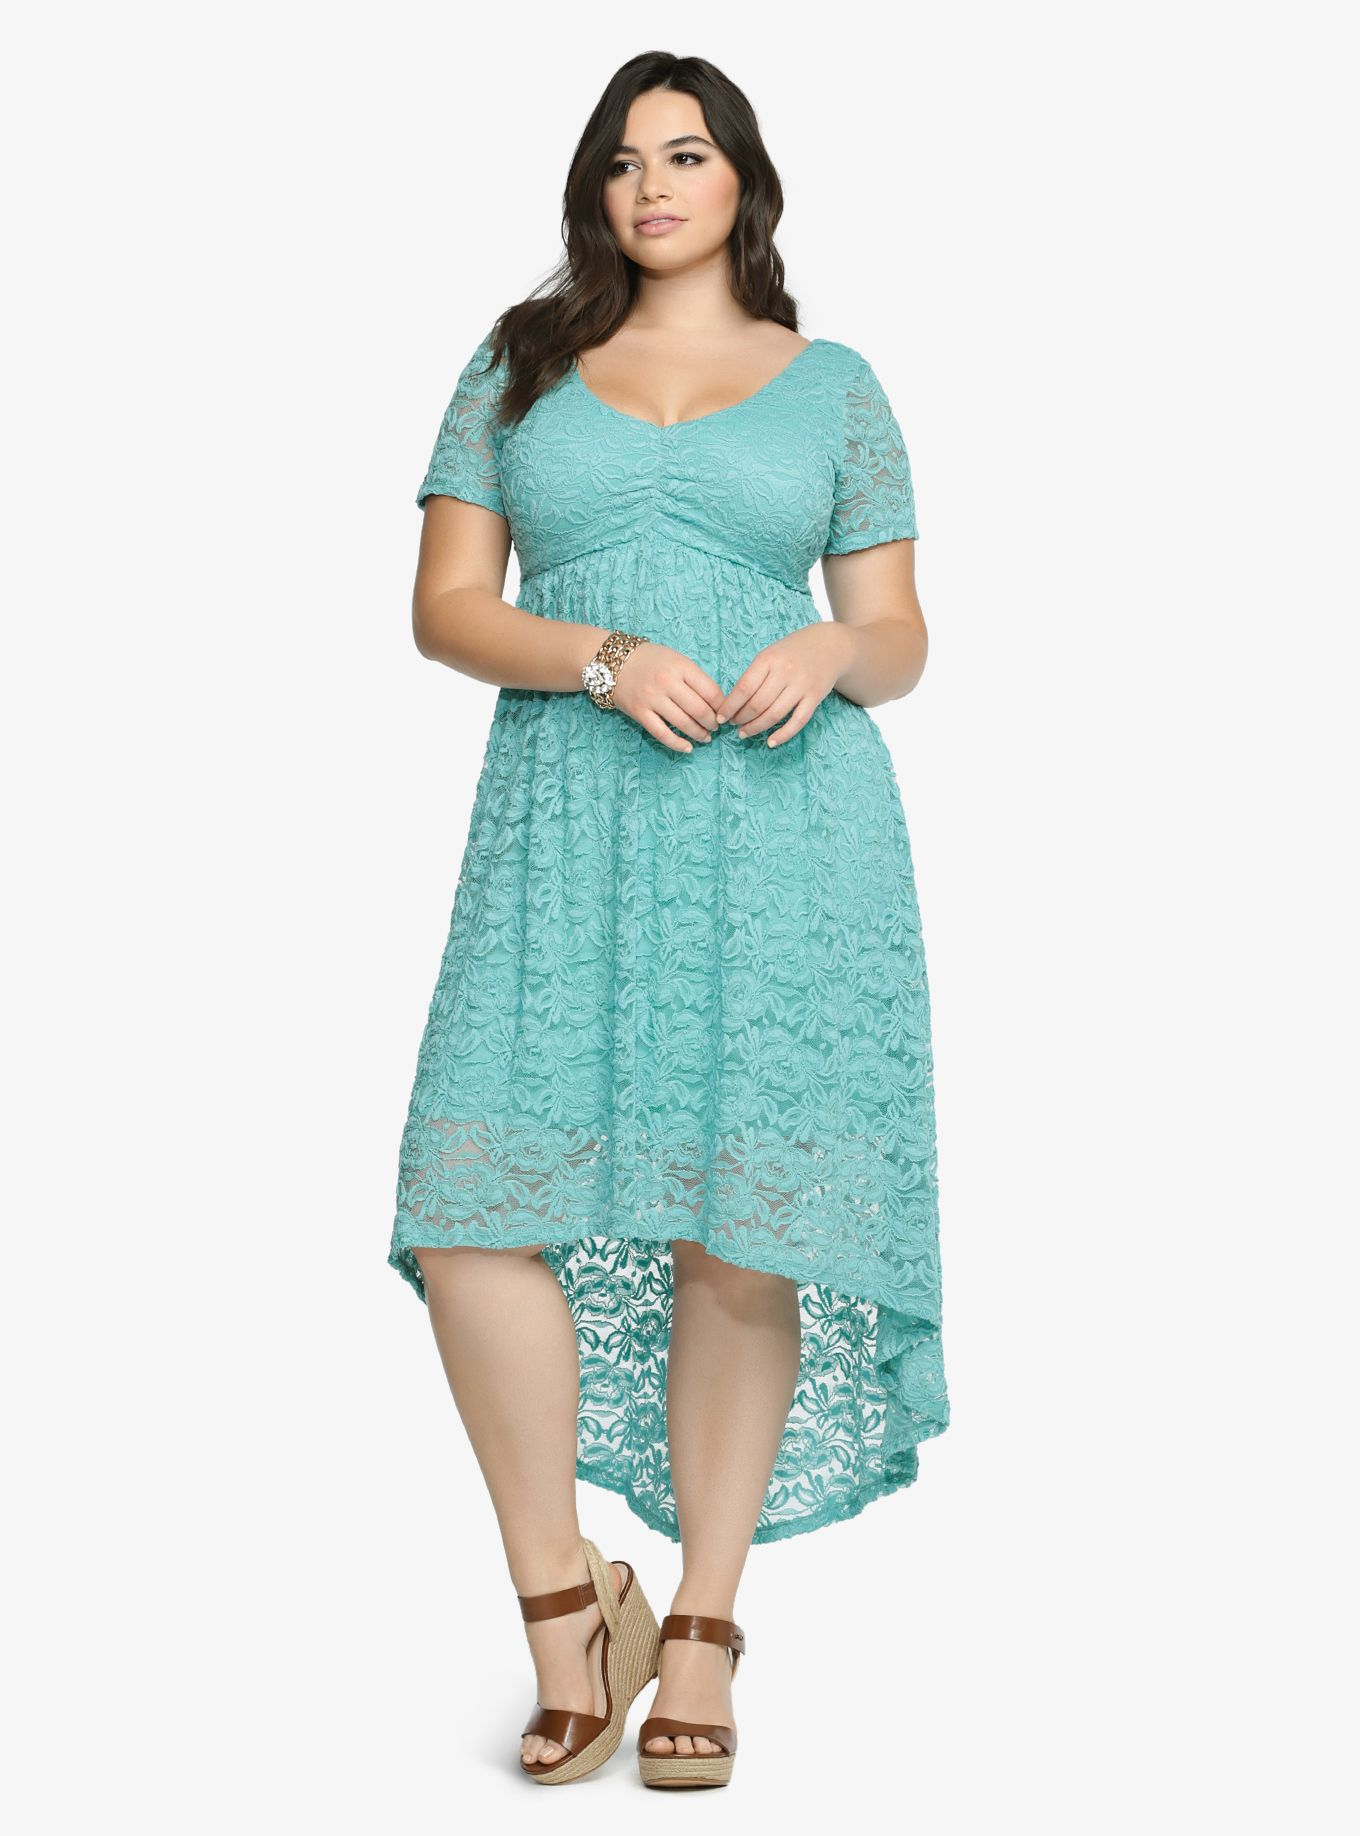 Lace dress torrid  HiLo Lace Babydoll Dress  Health u Beauty  Pinterest  Torrid